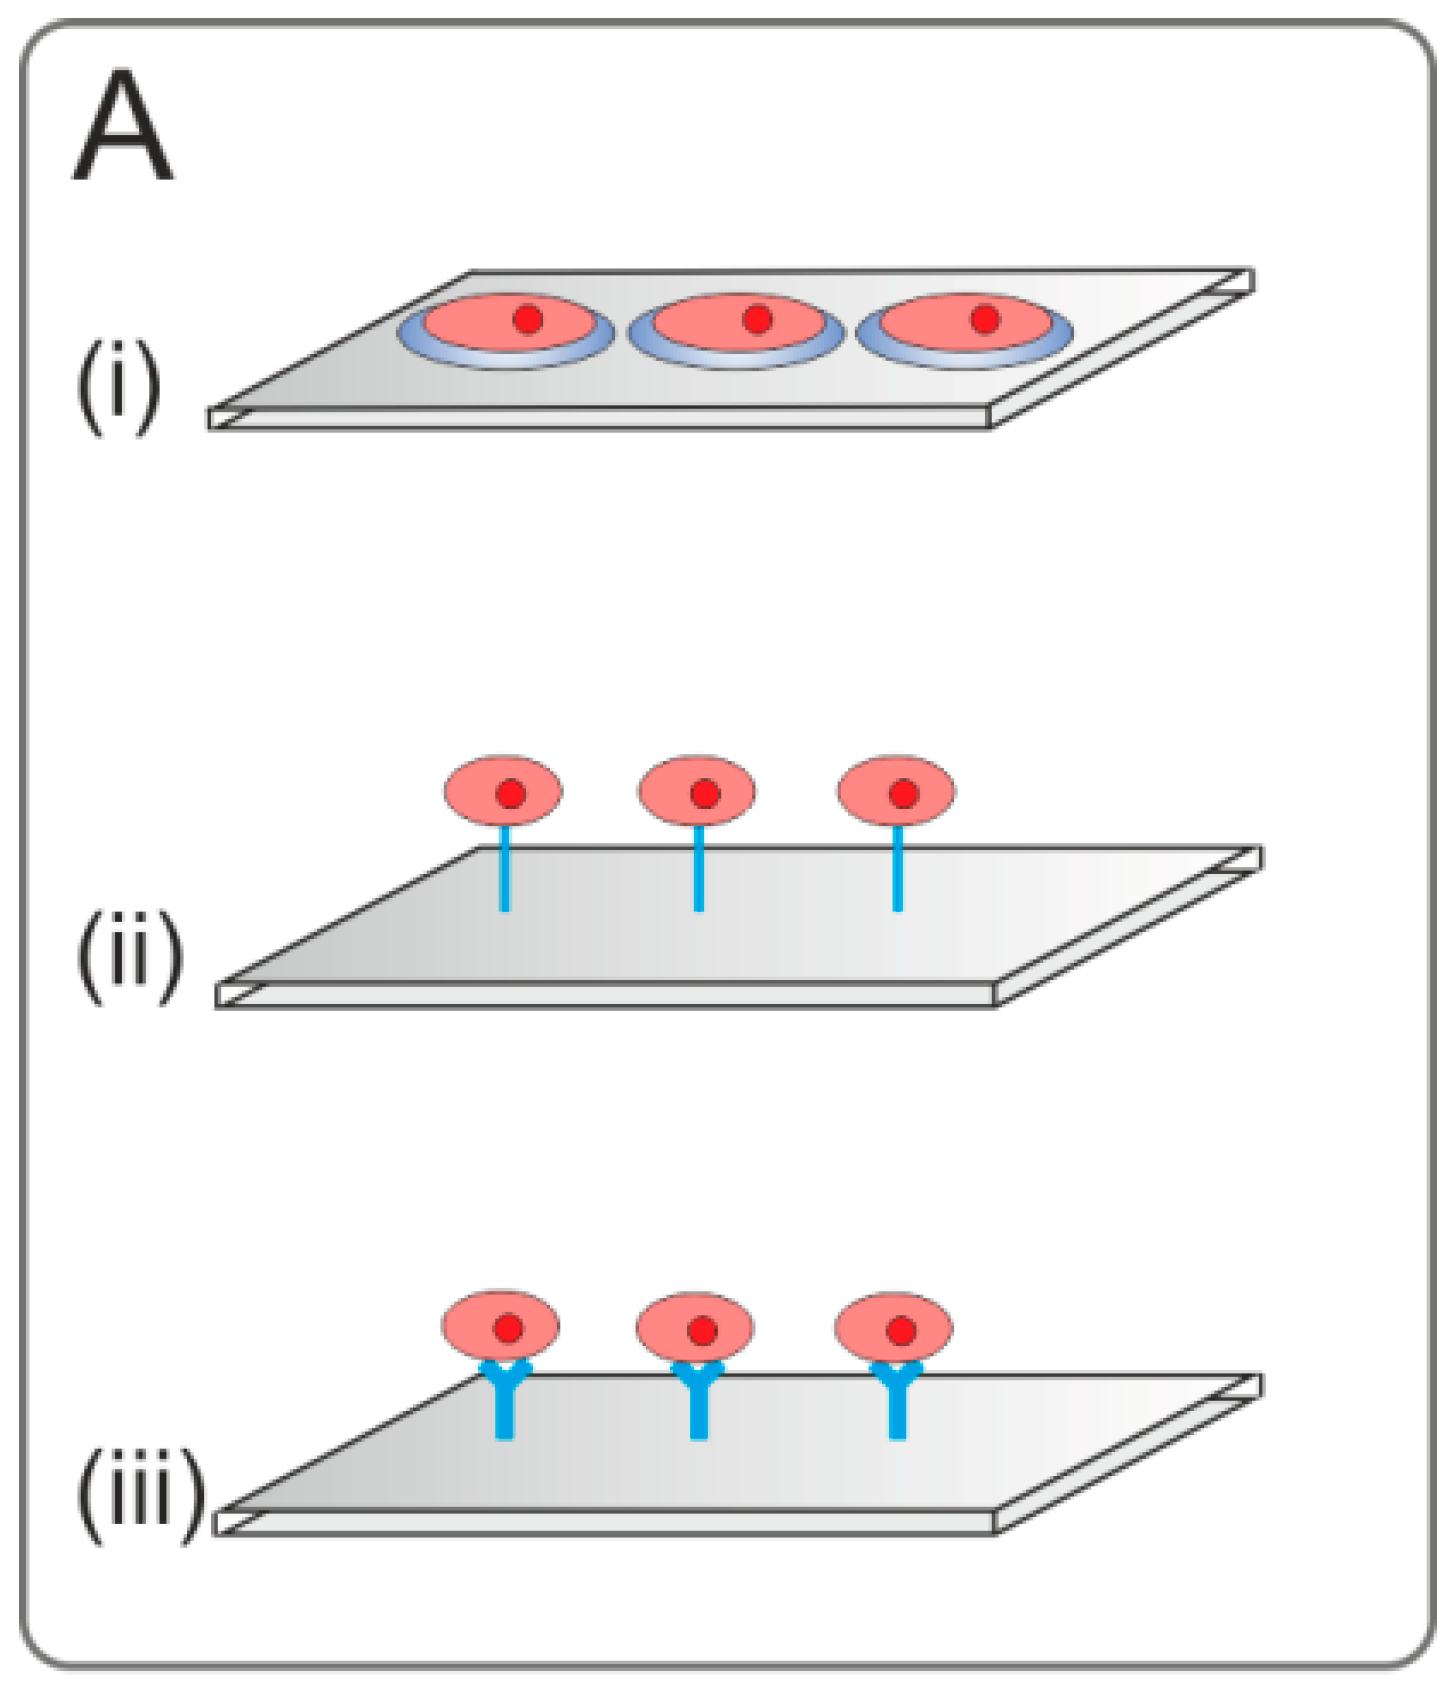 transfected cell microarrays essay Transfected cell microarrays were also embedded within three-dimensional ecm hydrogels in the three-dimensional hydrogel, the inhibition effect of sirna on cancer cell invasion was evaluated by quantifying the size of cell clusters on the microarrays.